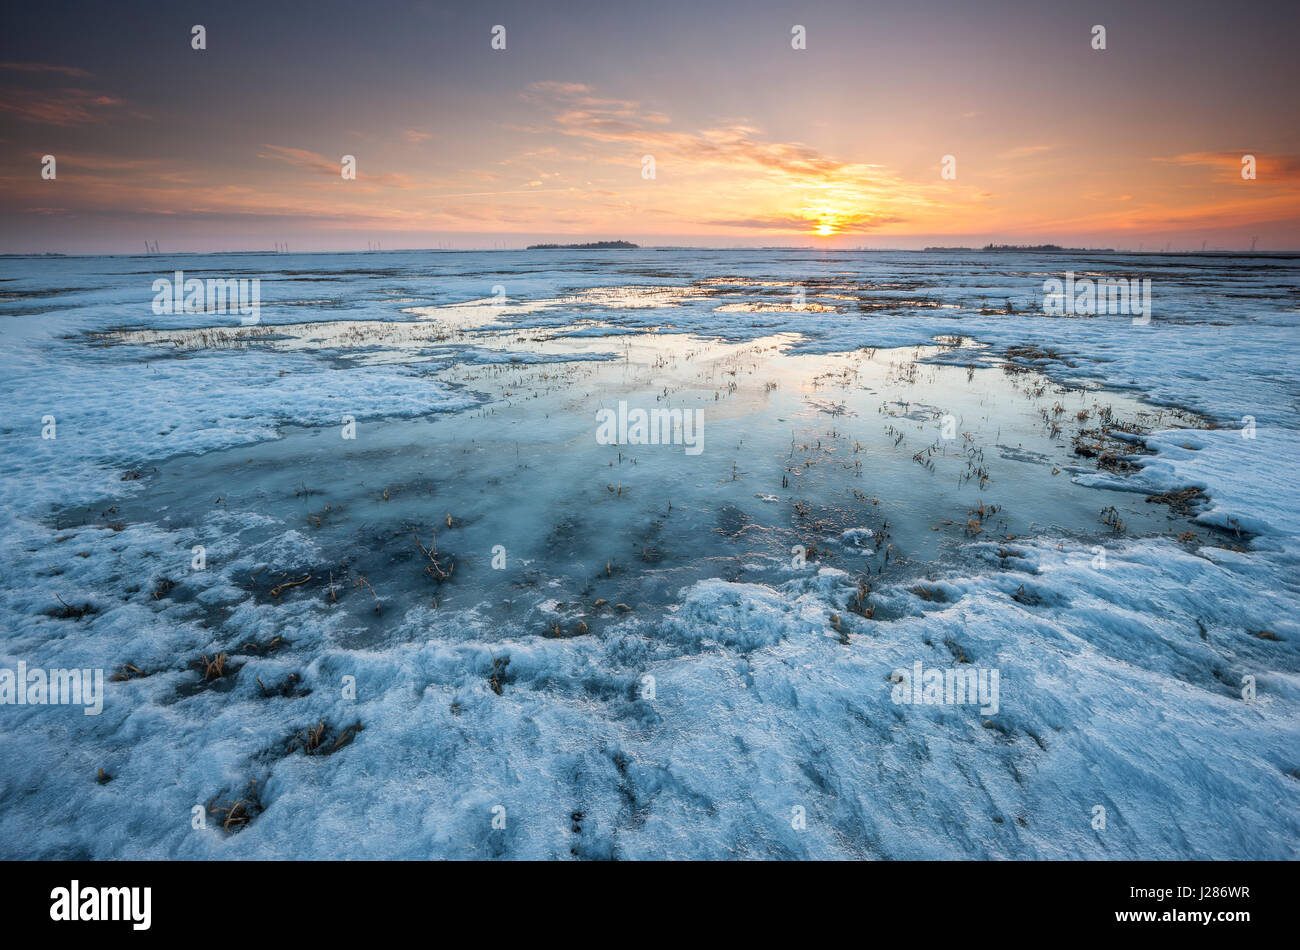 Sunset on frozen and snow covered fields in Manitoba, Canada - Stock Image